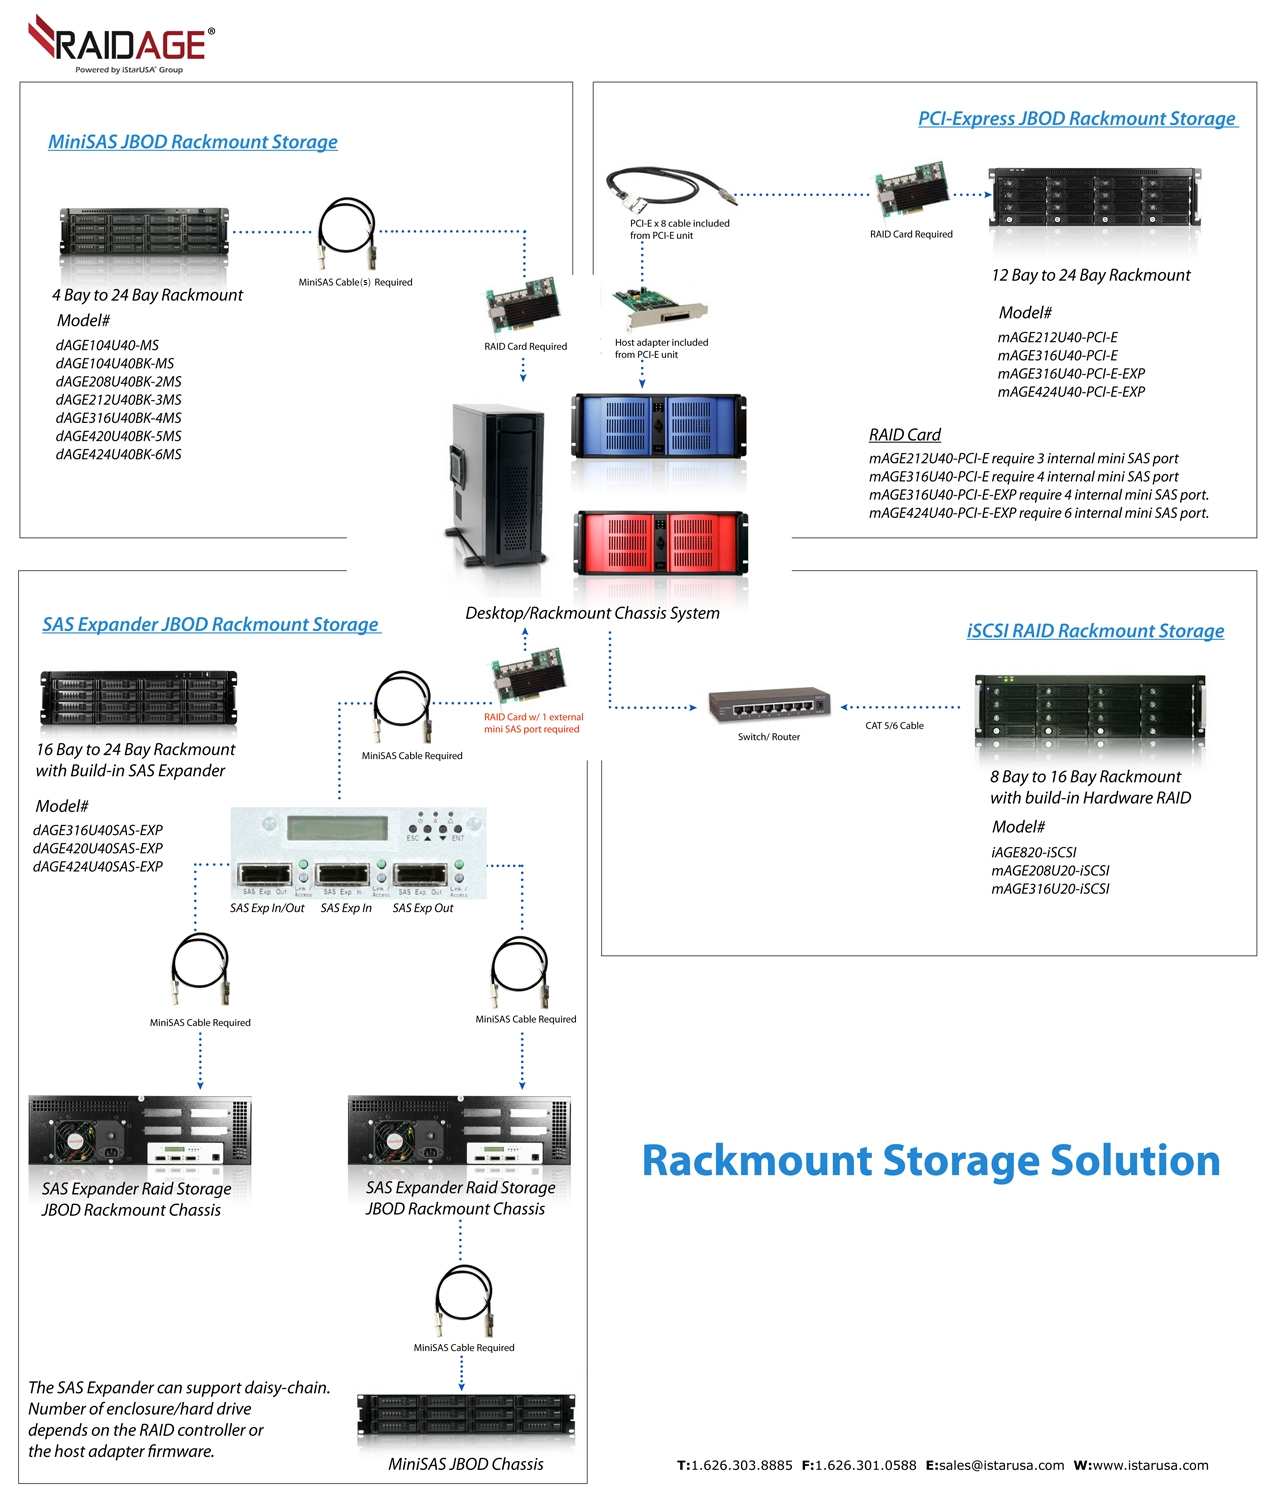 connectiondiagraml1 industrial chassis istarusa products k hd4488 1m hd minisas